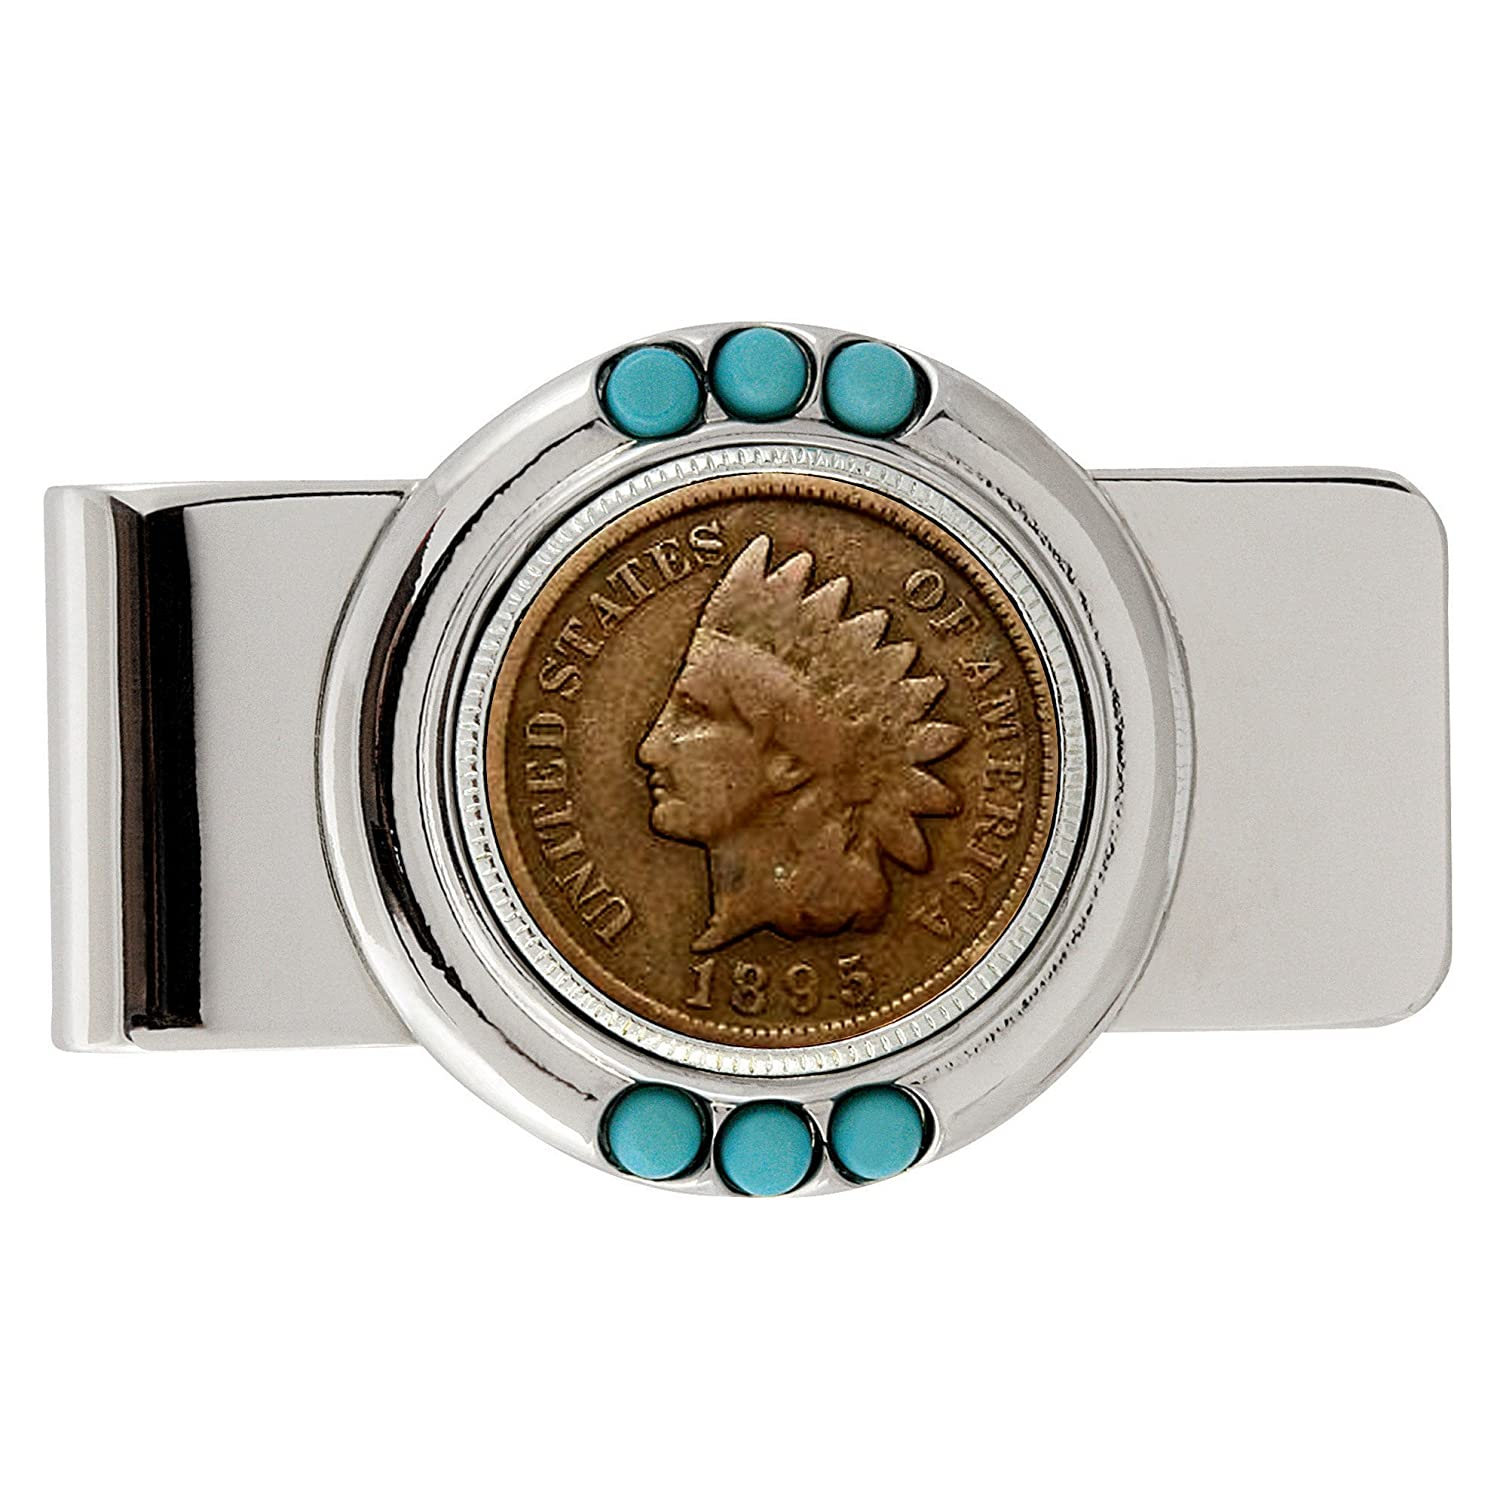 Smithsonian Institution 1800s Indian Penny Turquoise Coin Money Clip